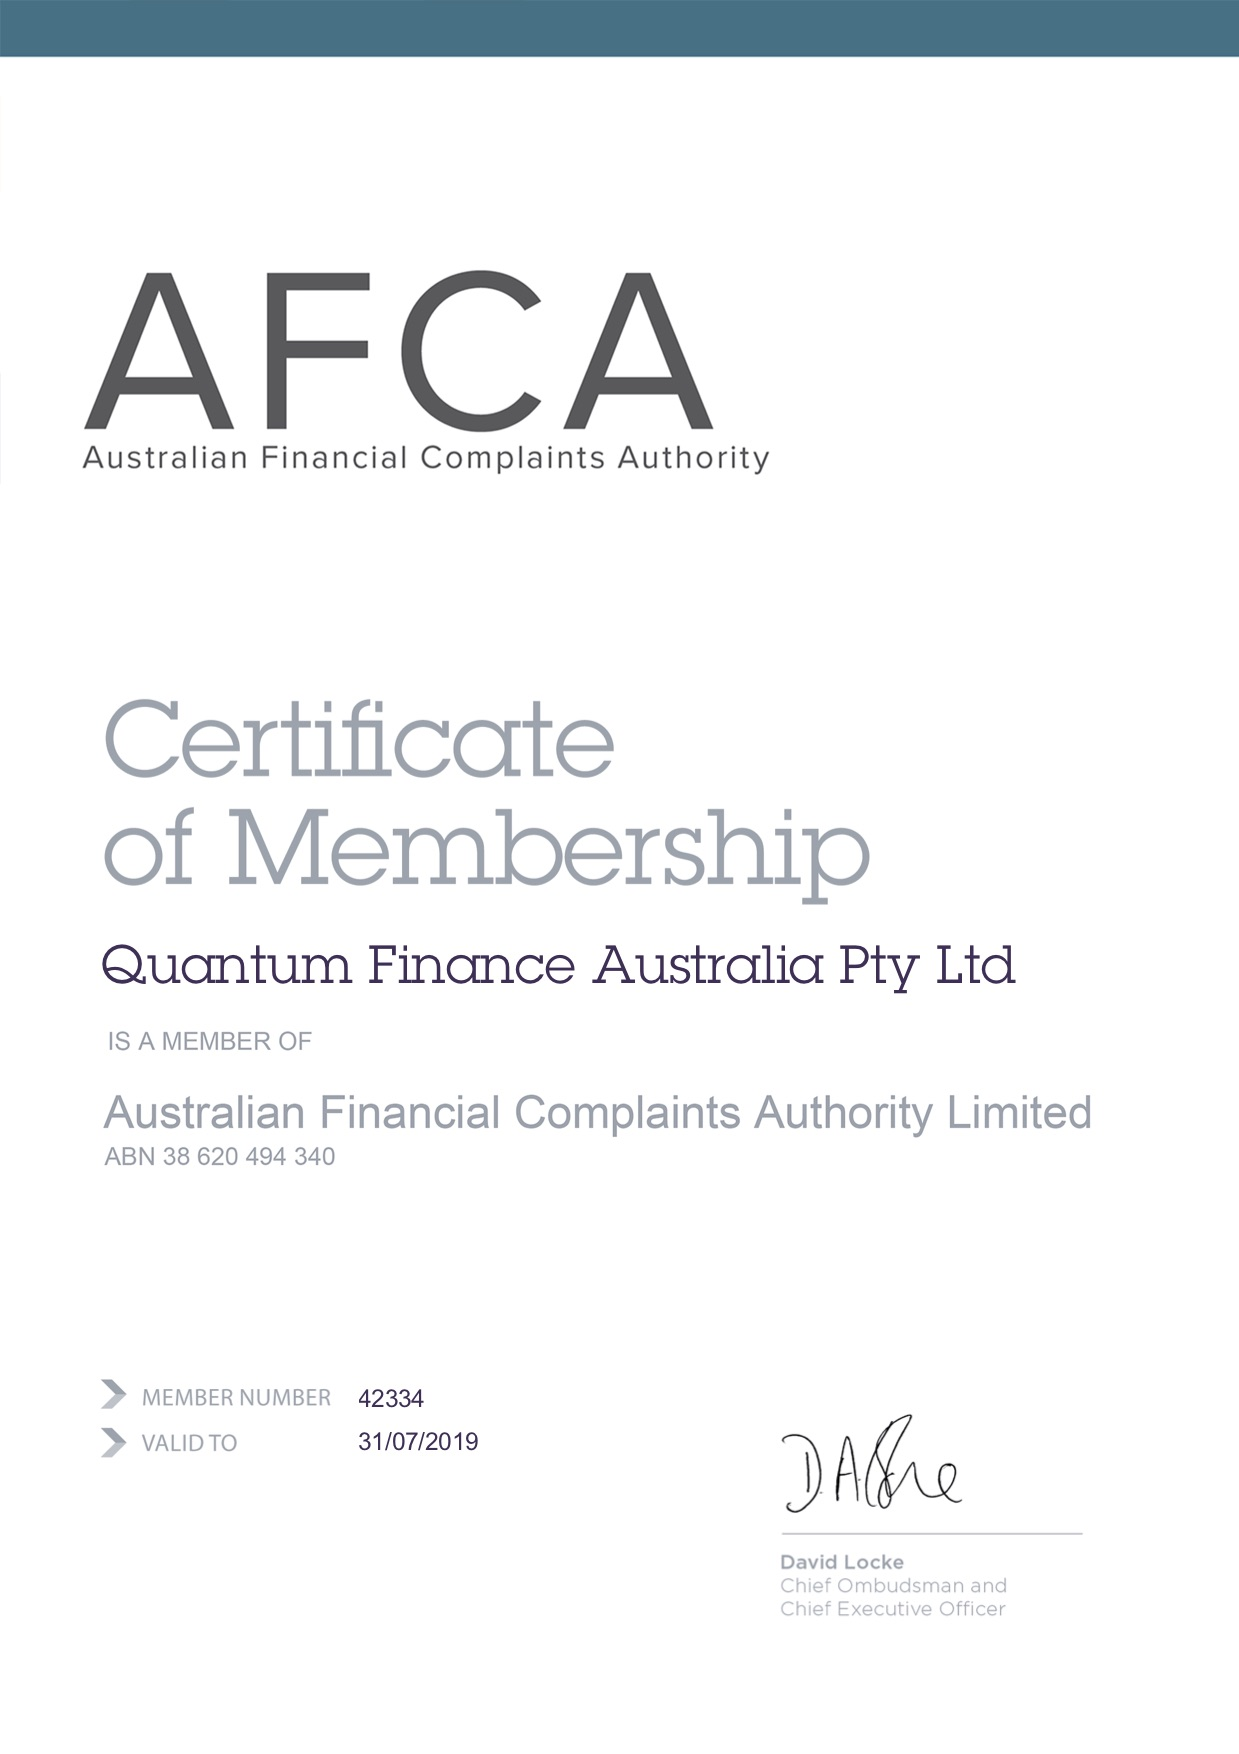 Gavin Harrigan is a member of the Australian financial complaints authority